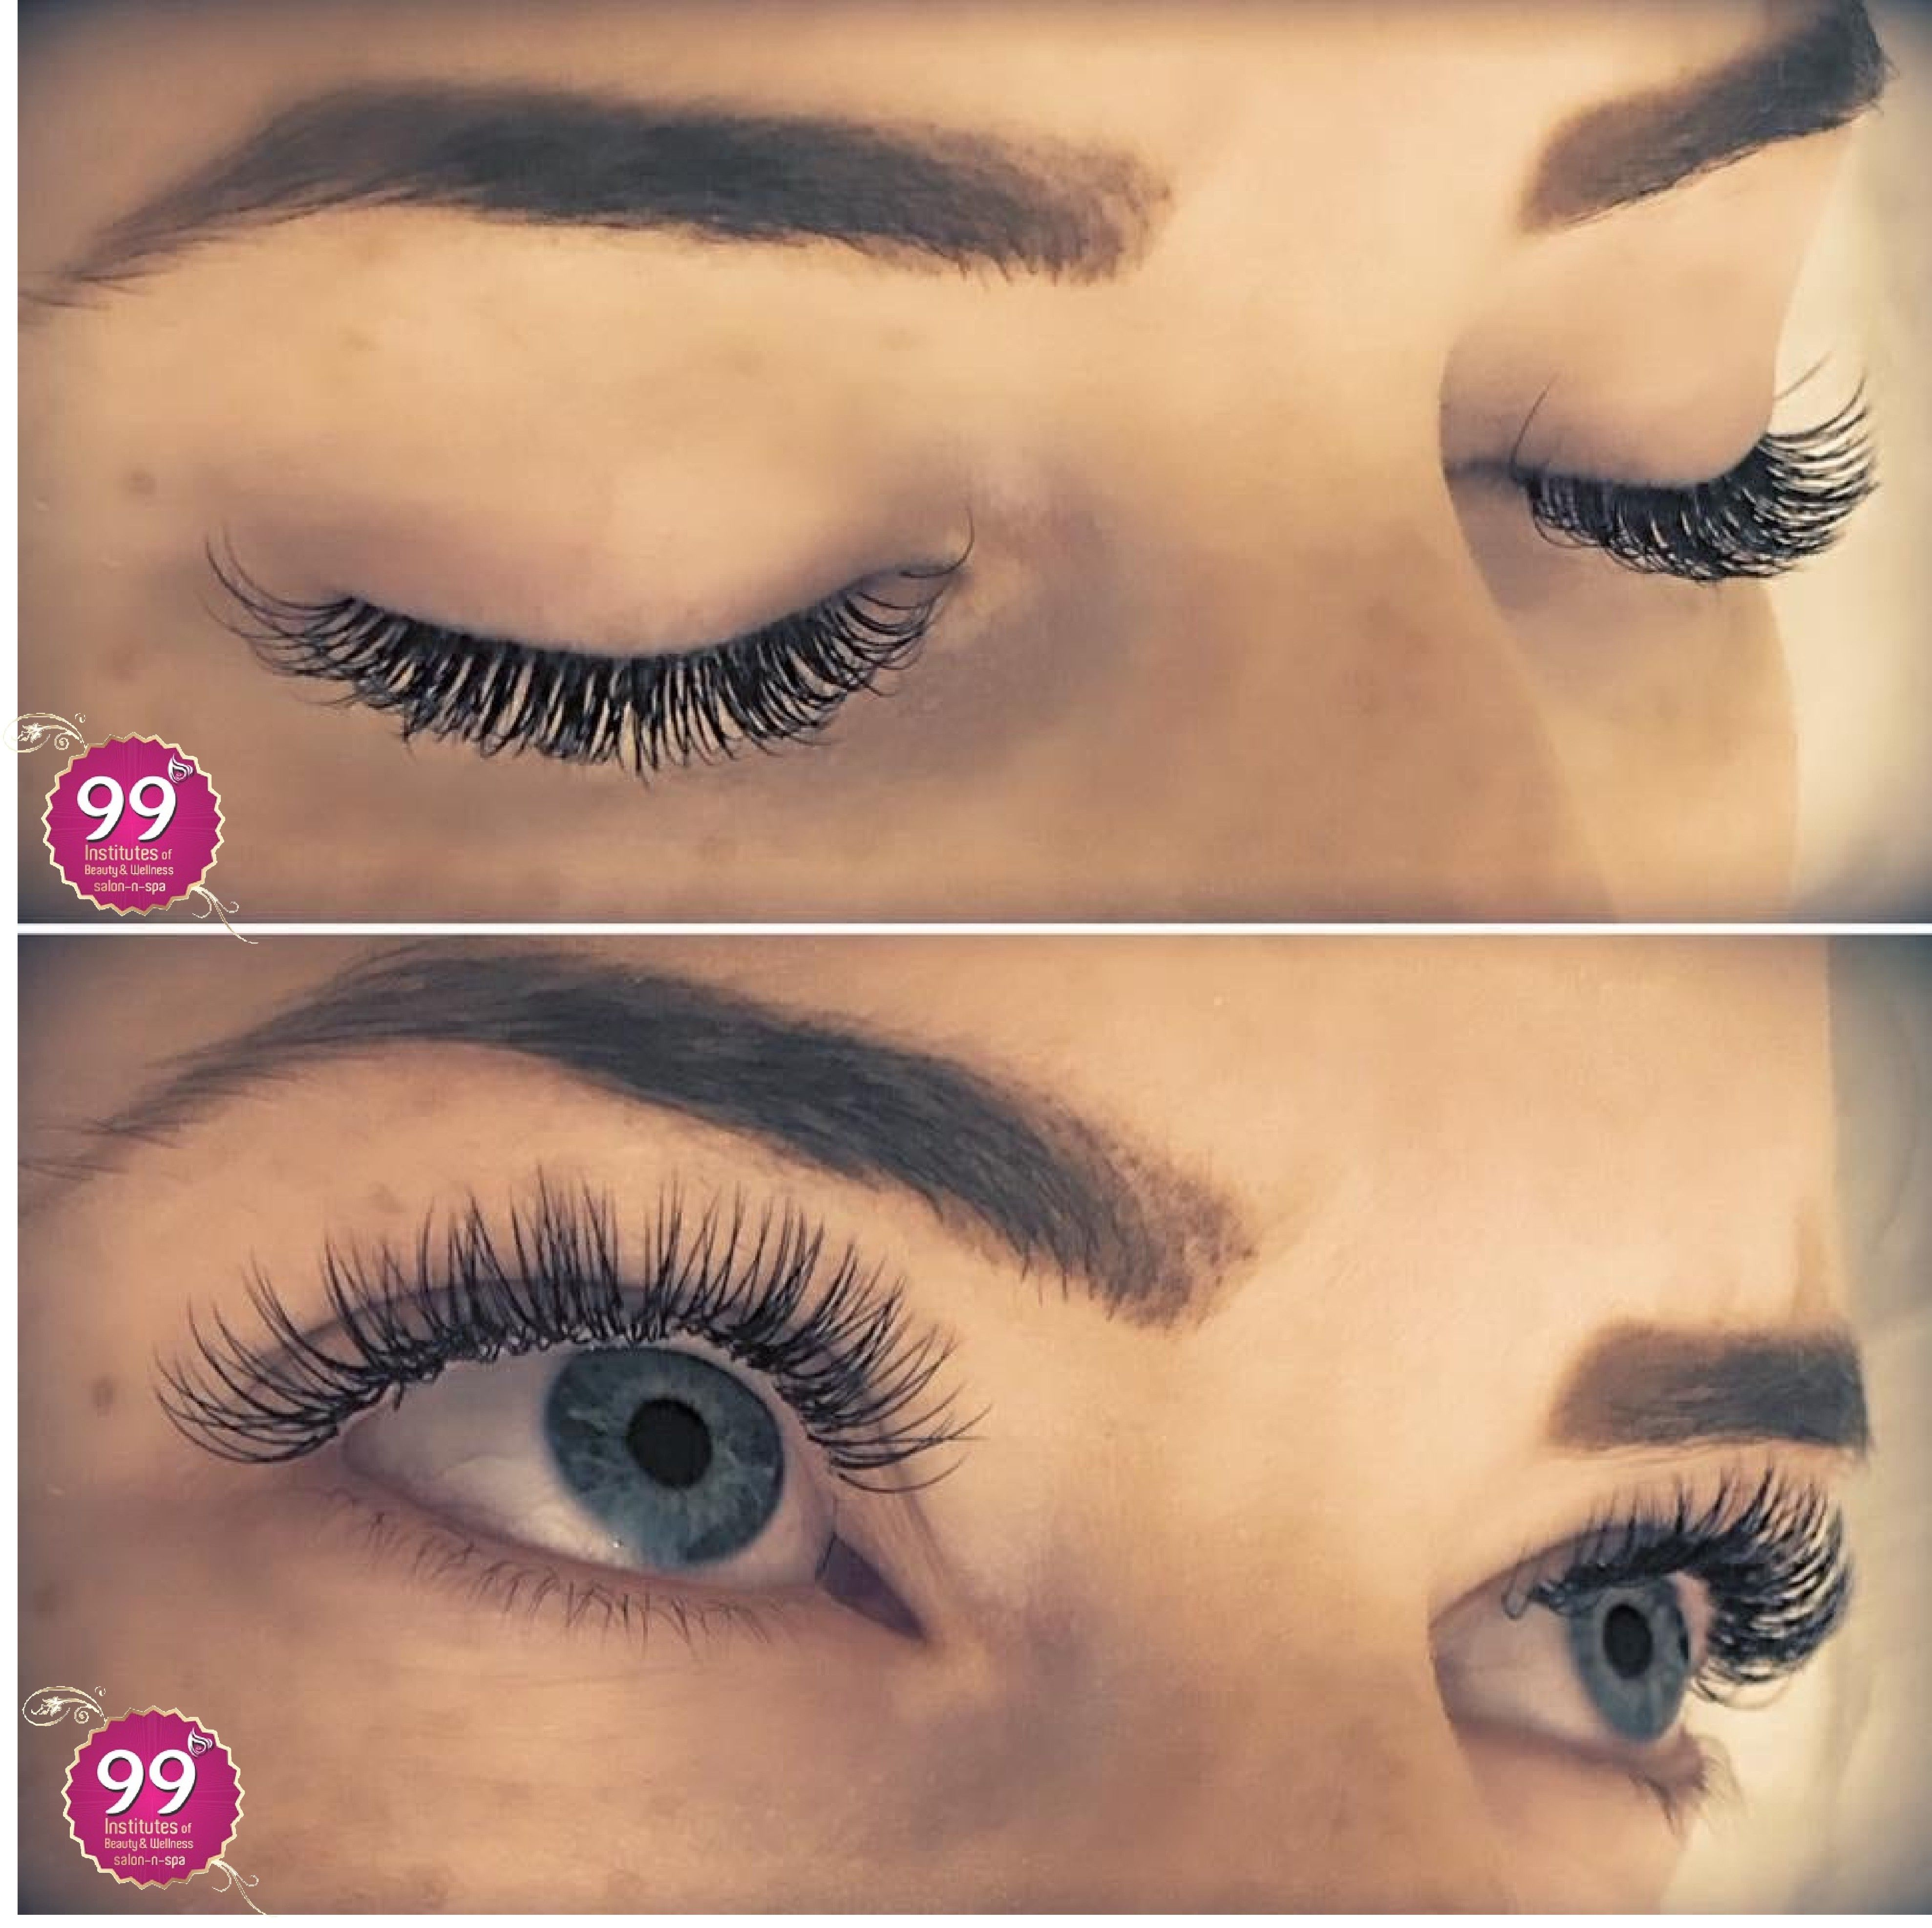 99 Eyelash extension are worn by ladies to thicken the